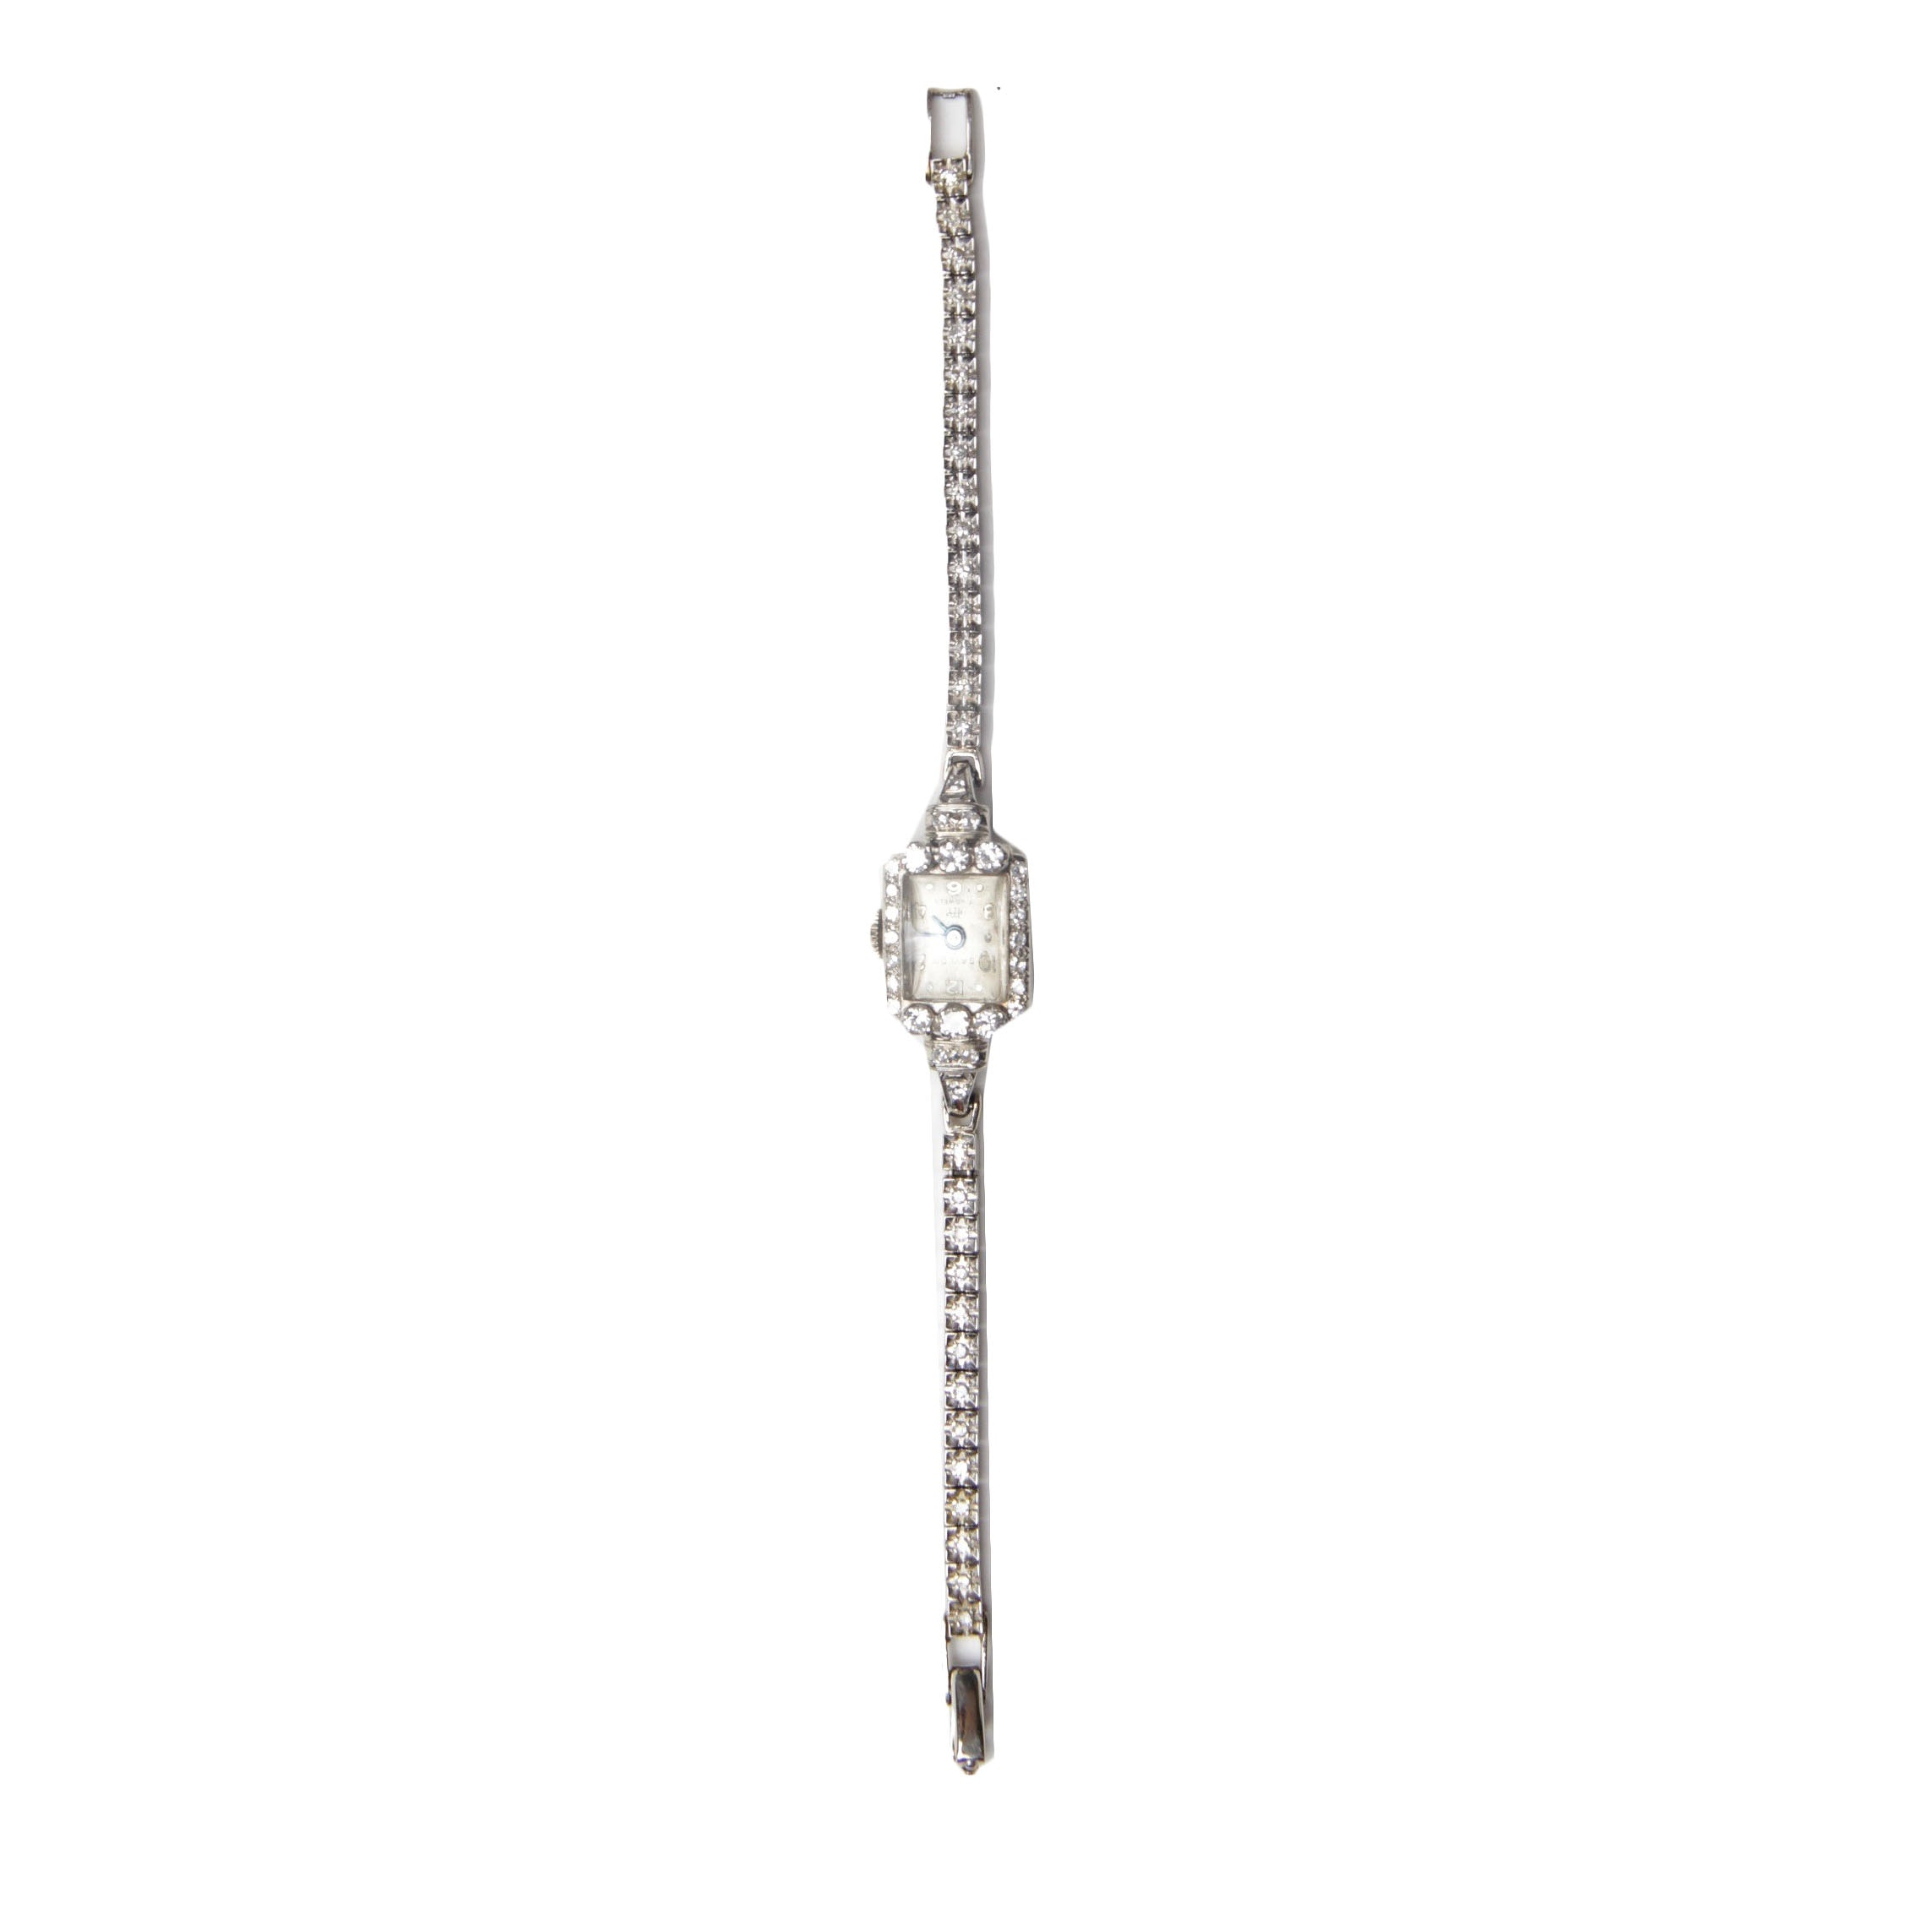 Baylor Jewels 14K White Gold and 1.00 CTW Diamond  Wristwatch